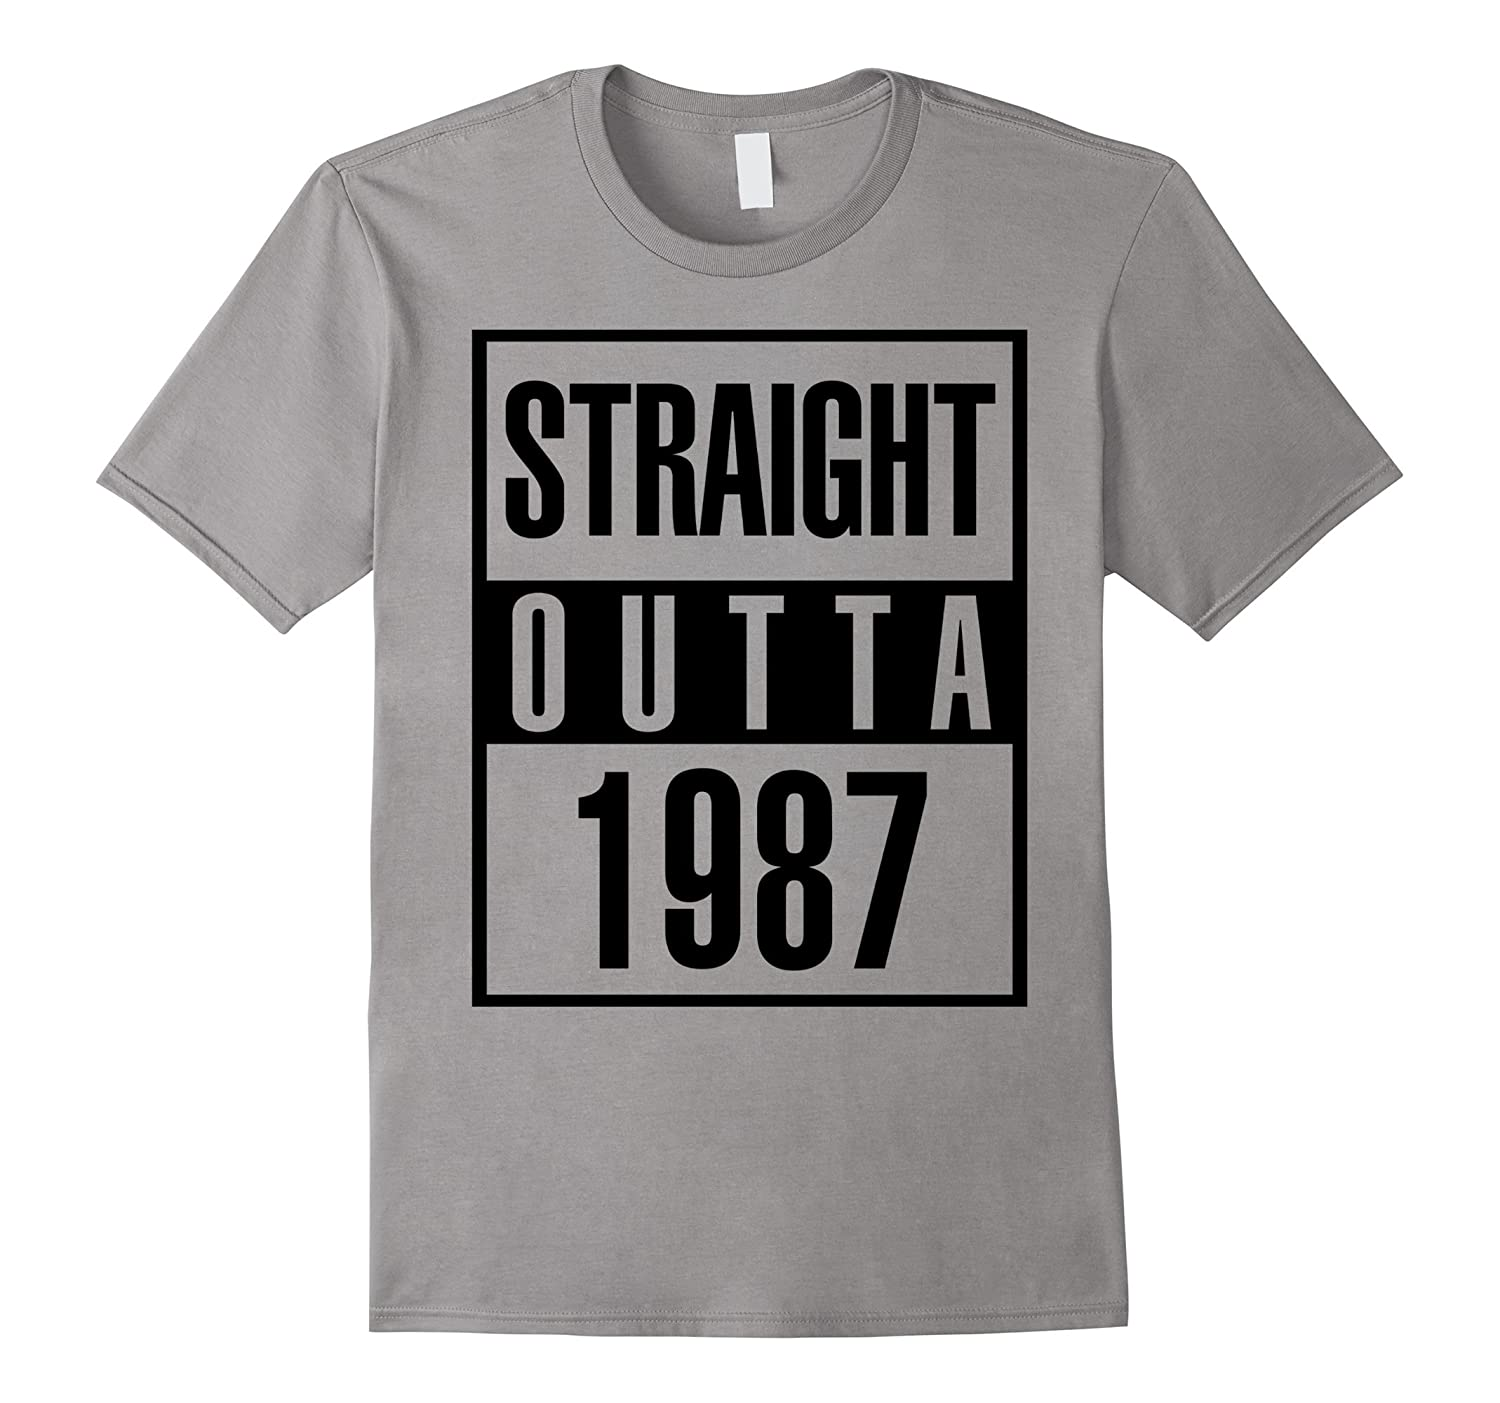 1987 30th Years Old Funny Birthday Gift T-Shirt-Art